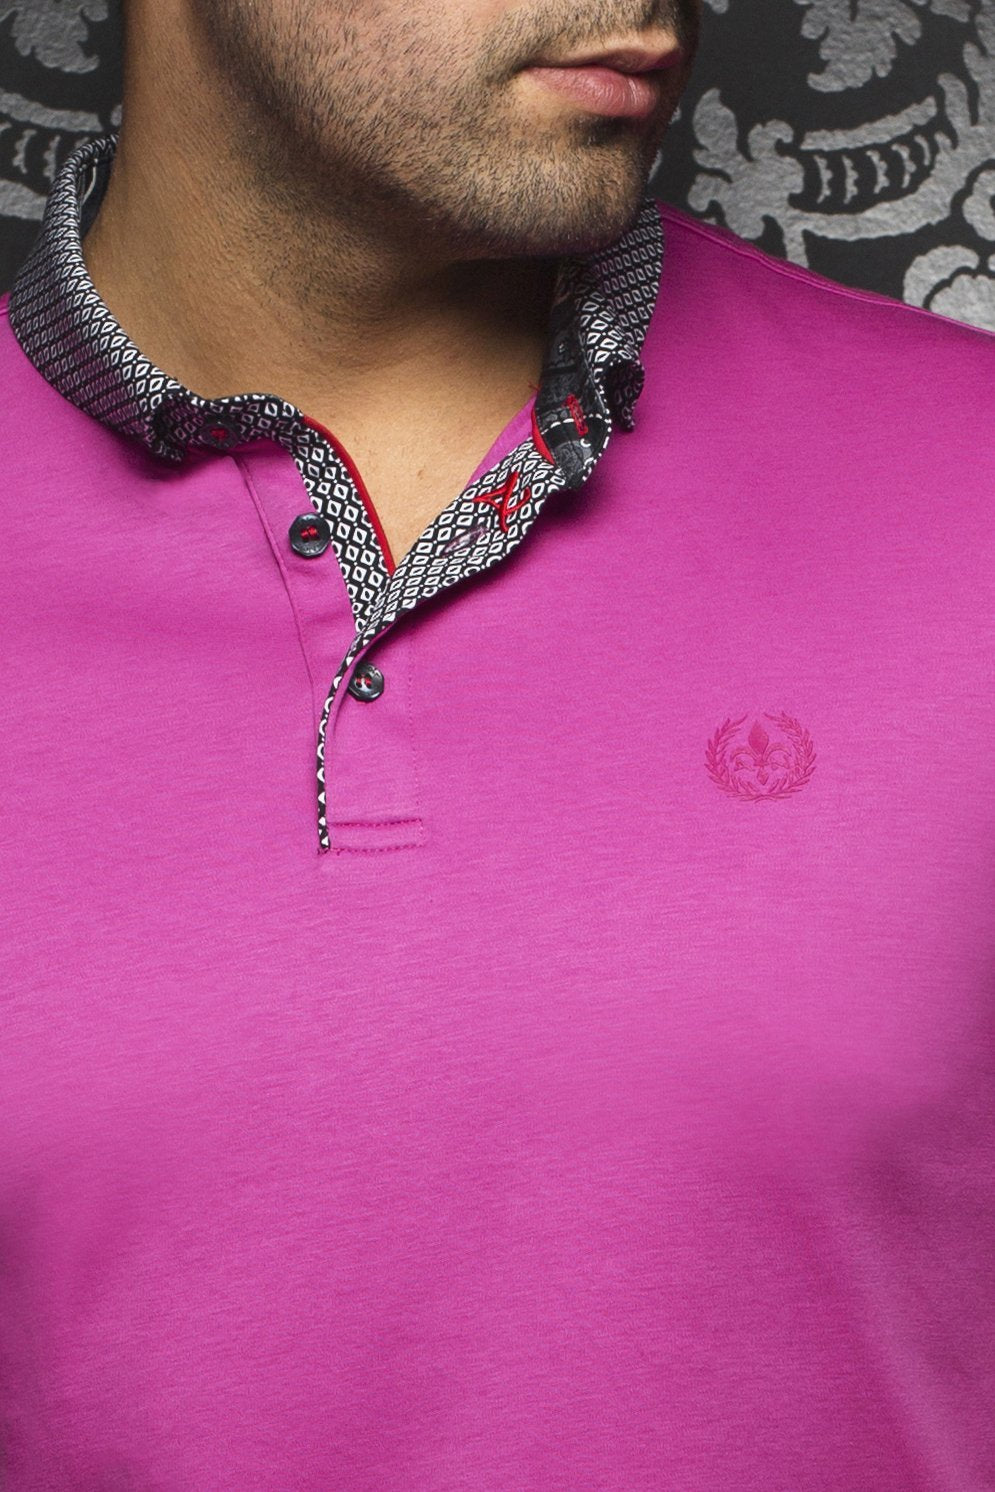 Au Noir Fushia Short-Sleeve Stretch Night Out Polo Shirt - Teddy Fuchsia